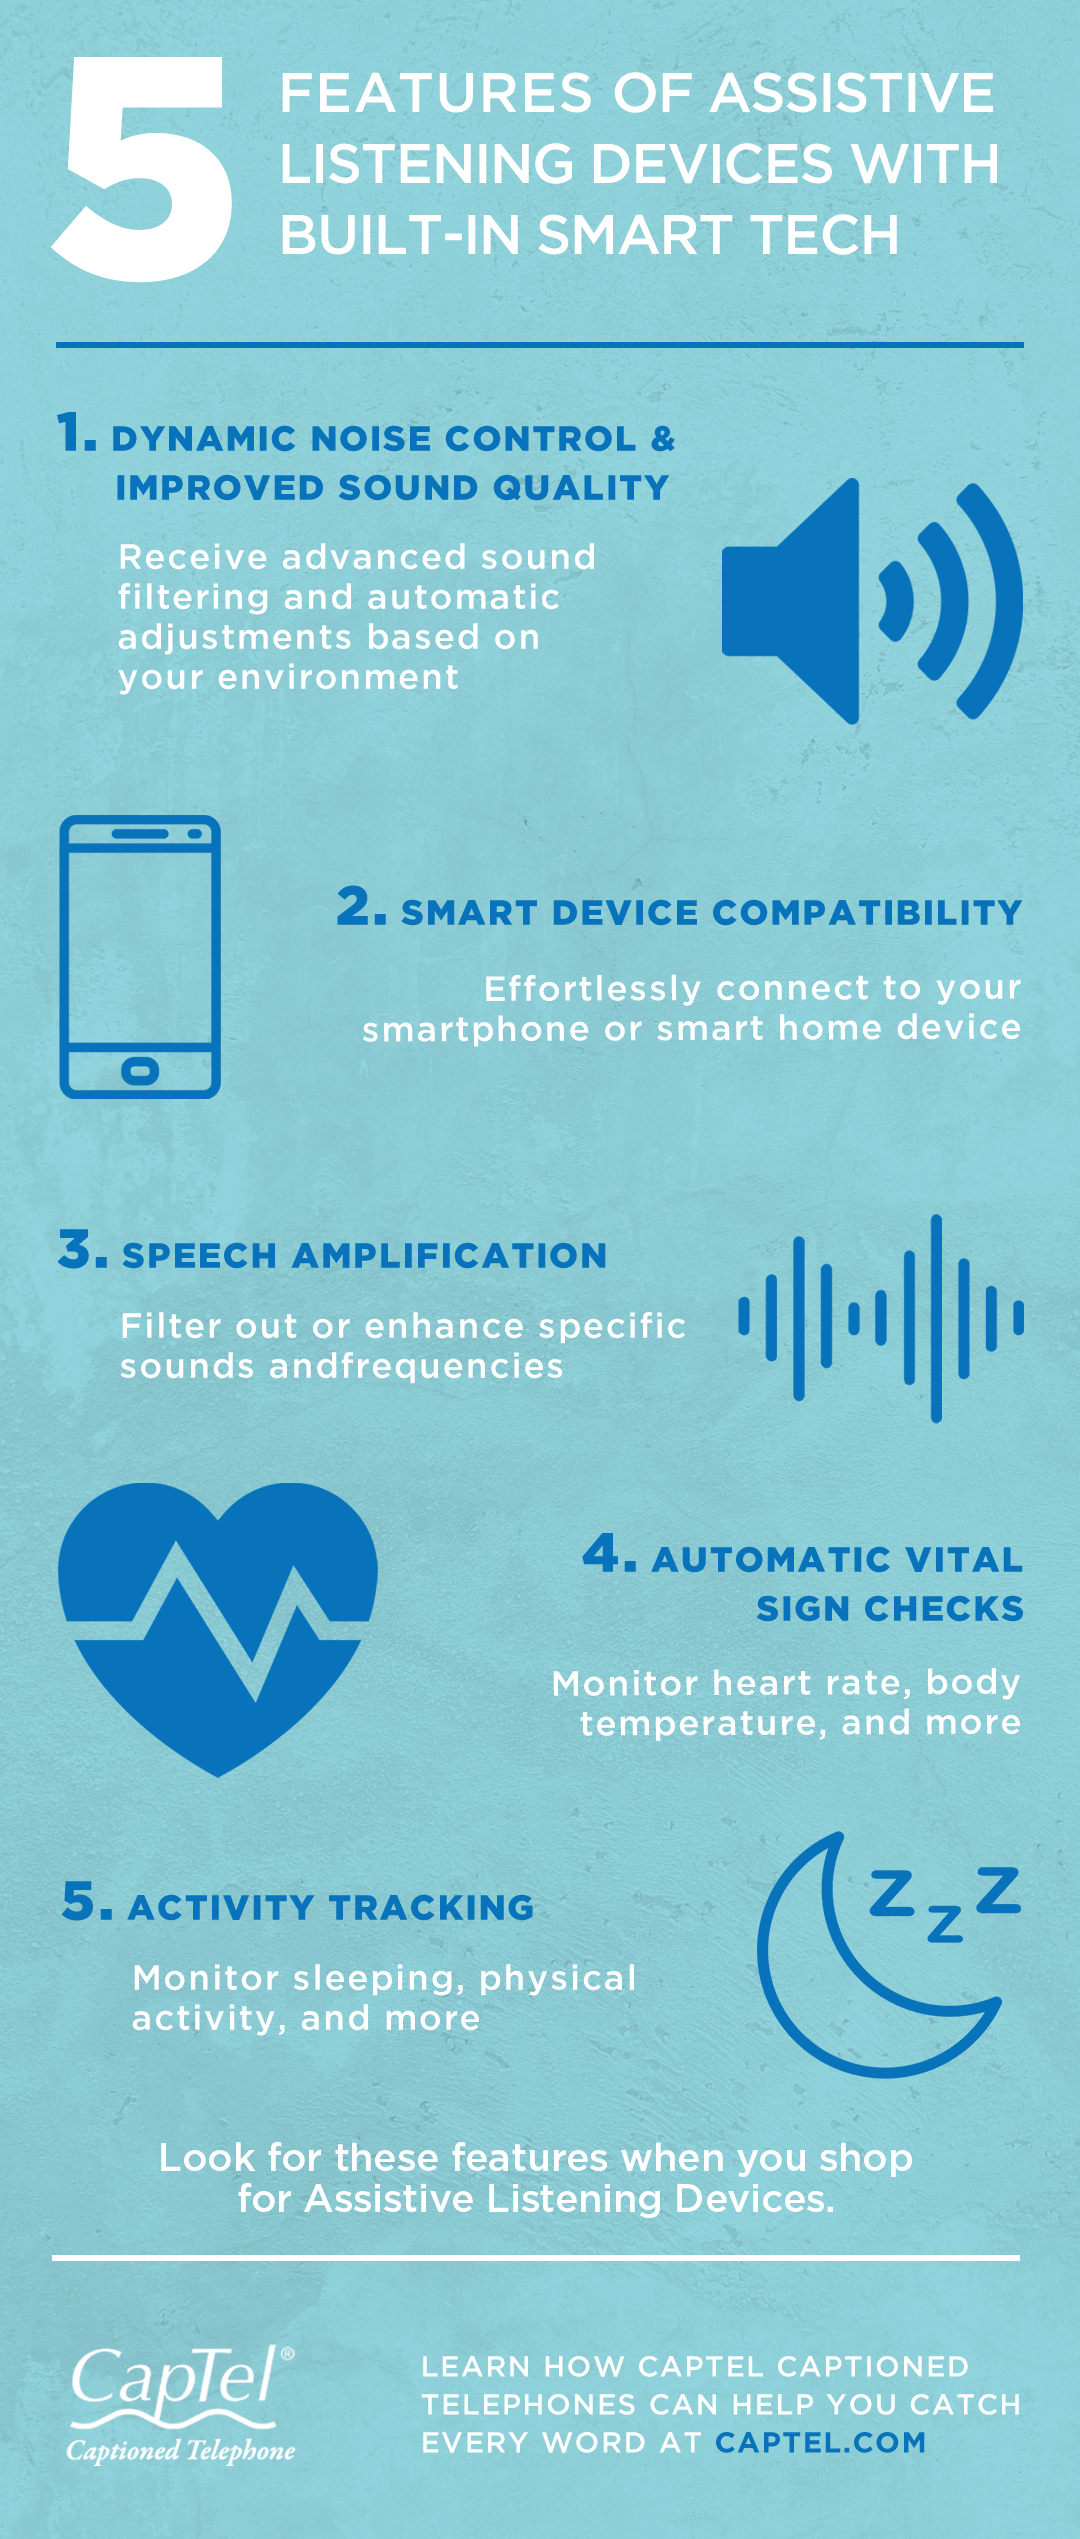 This infographic covers smart tech features for assistive listening devices.